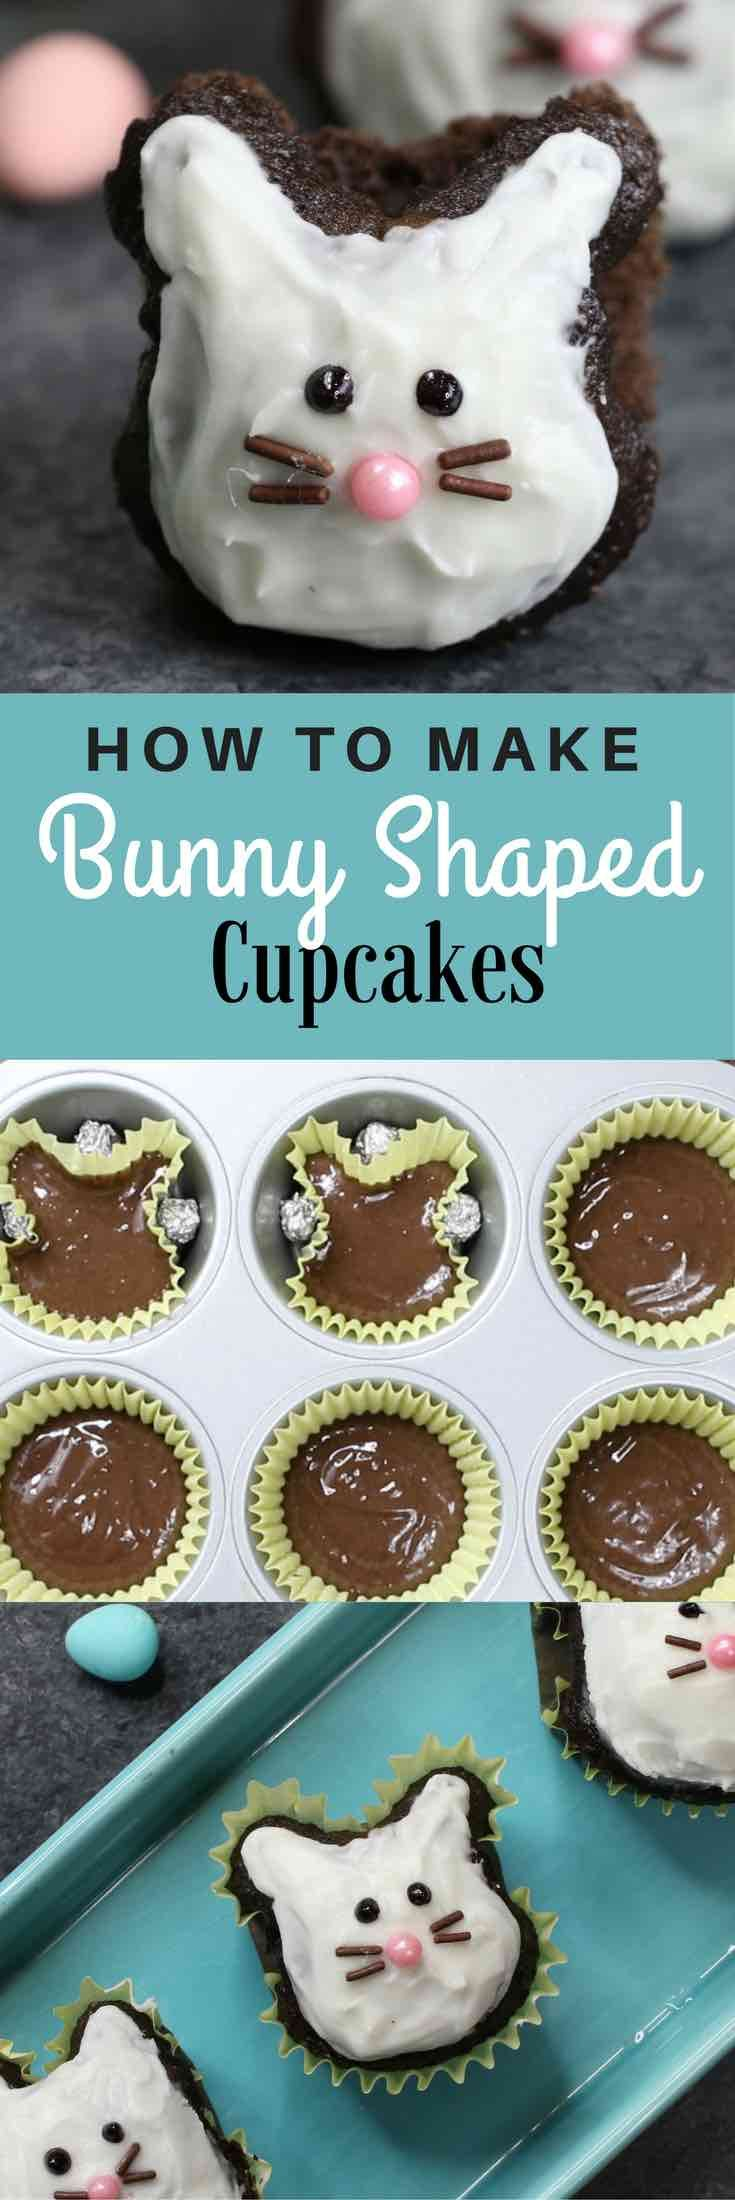 how to make muffin mix into cupcakes